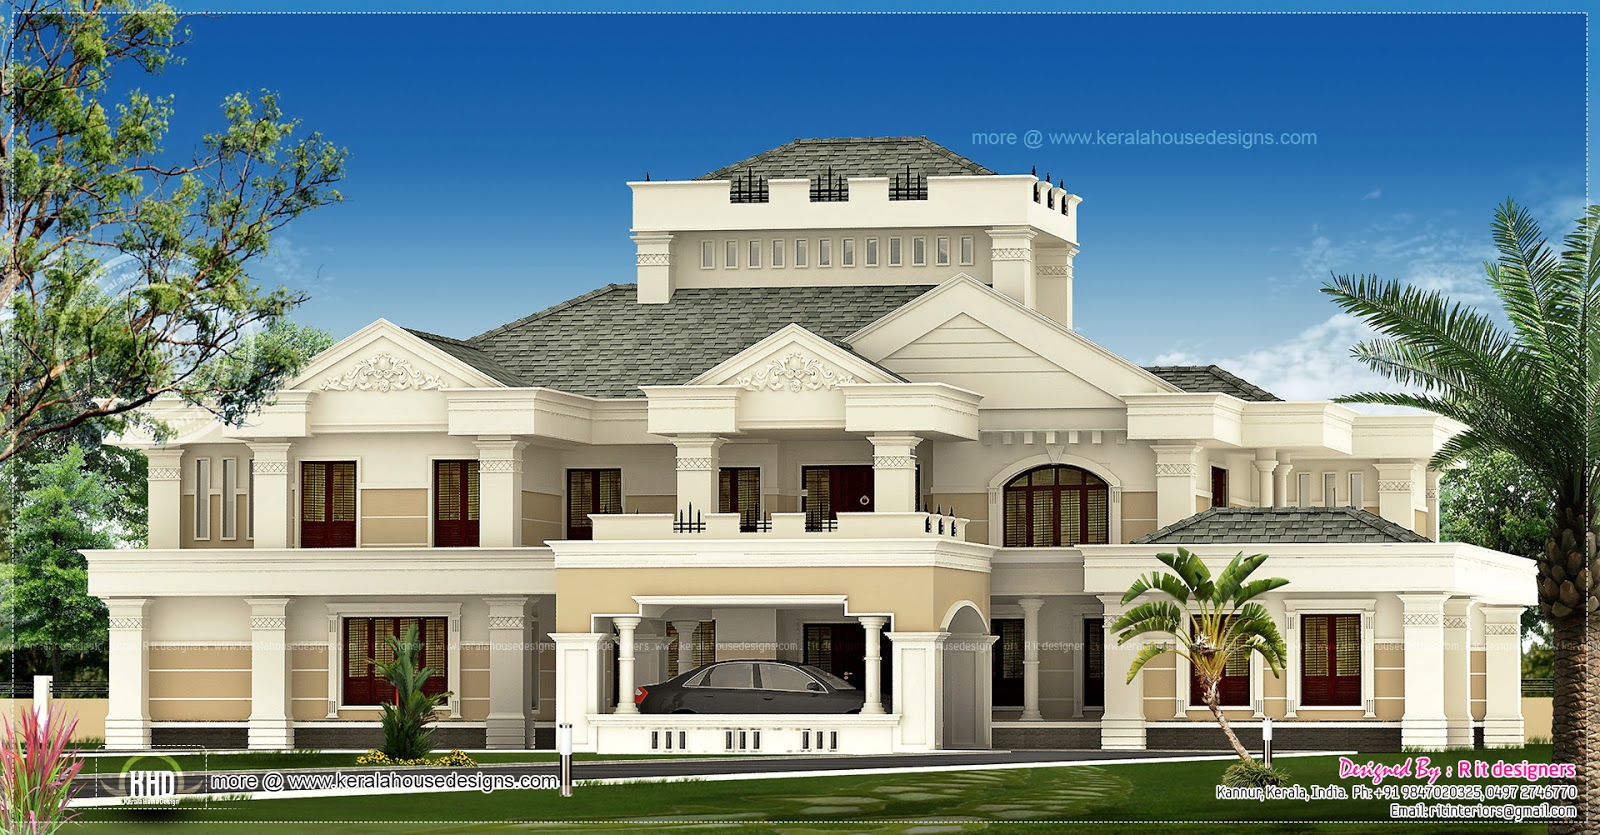 Super luxury kerala house exterior house design plans for Luxury mansion plans